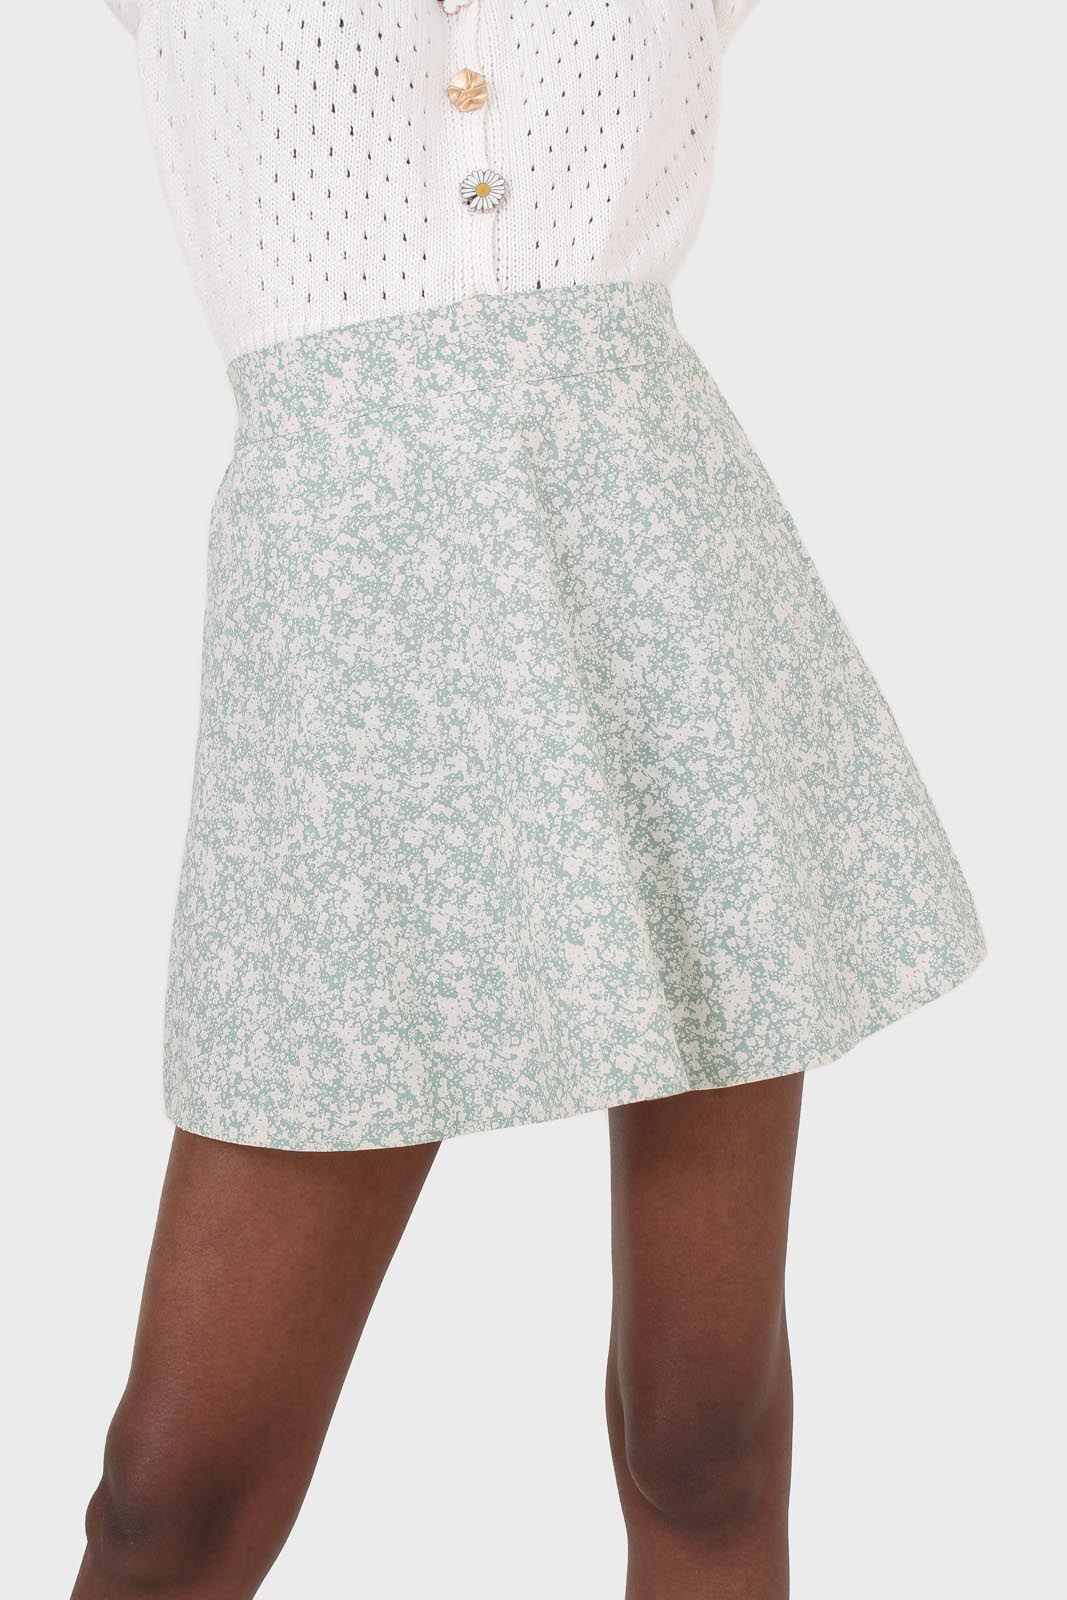 Mint and white tiny floral skirt1